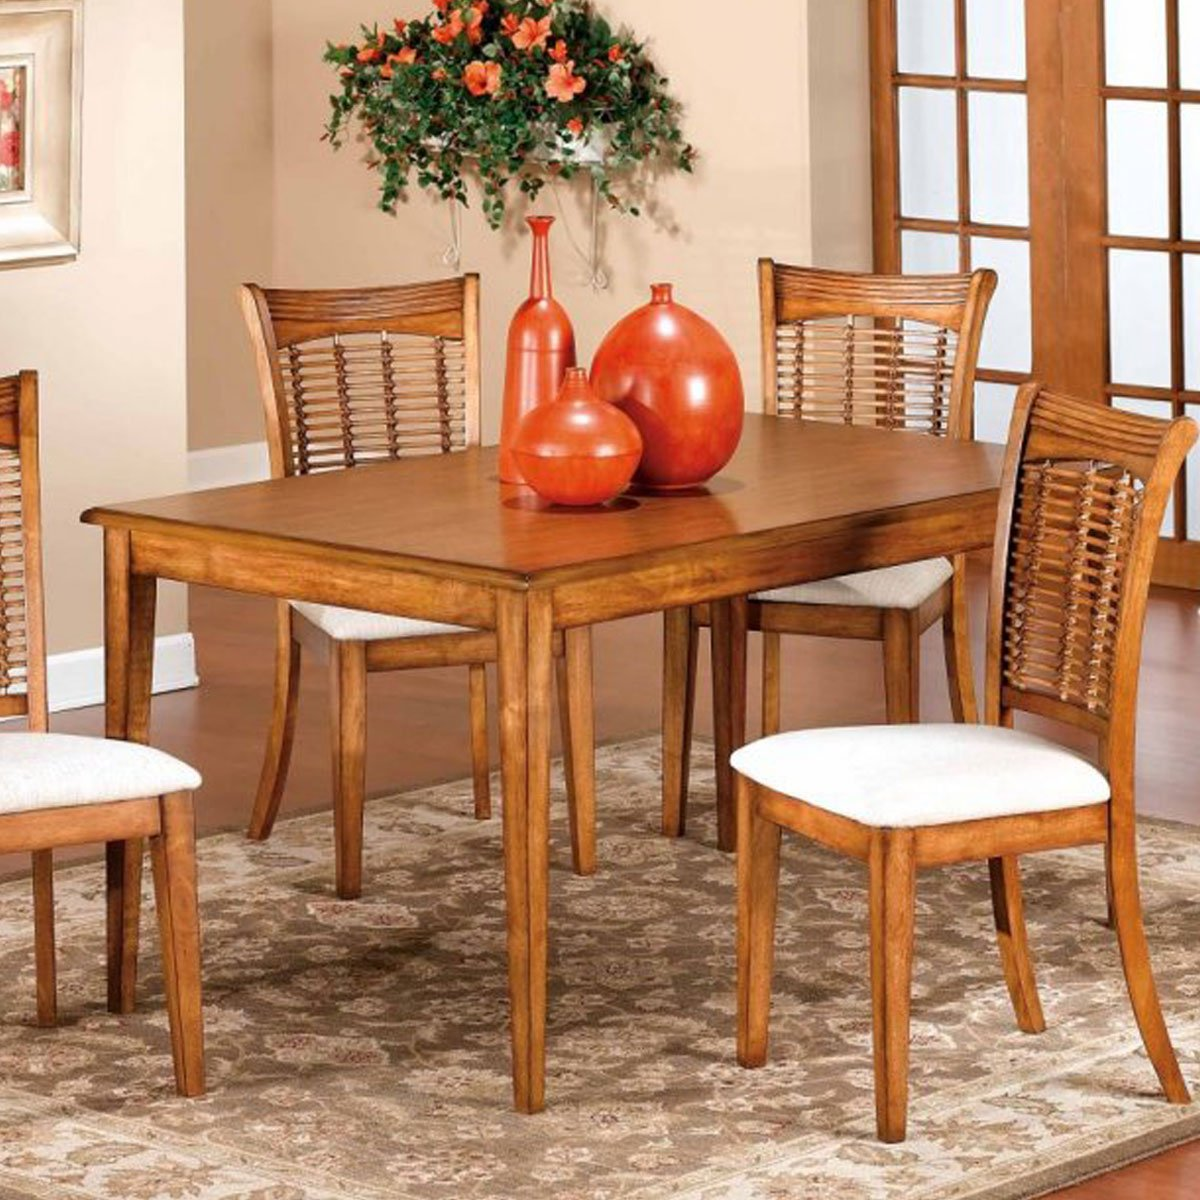 Bayberry dark cherry 44 inch round table with chairs - Bayberry Dark Cherry 44 Inch Round Table With Chairs 7